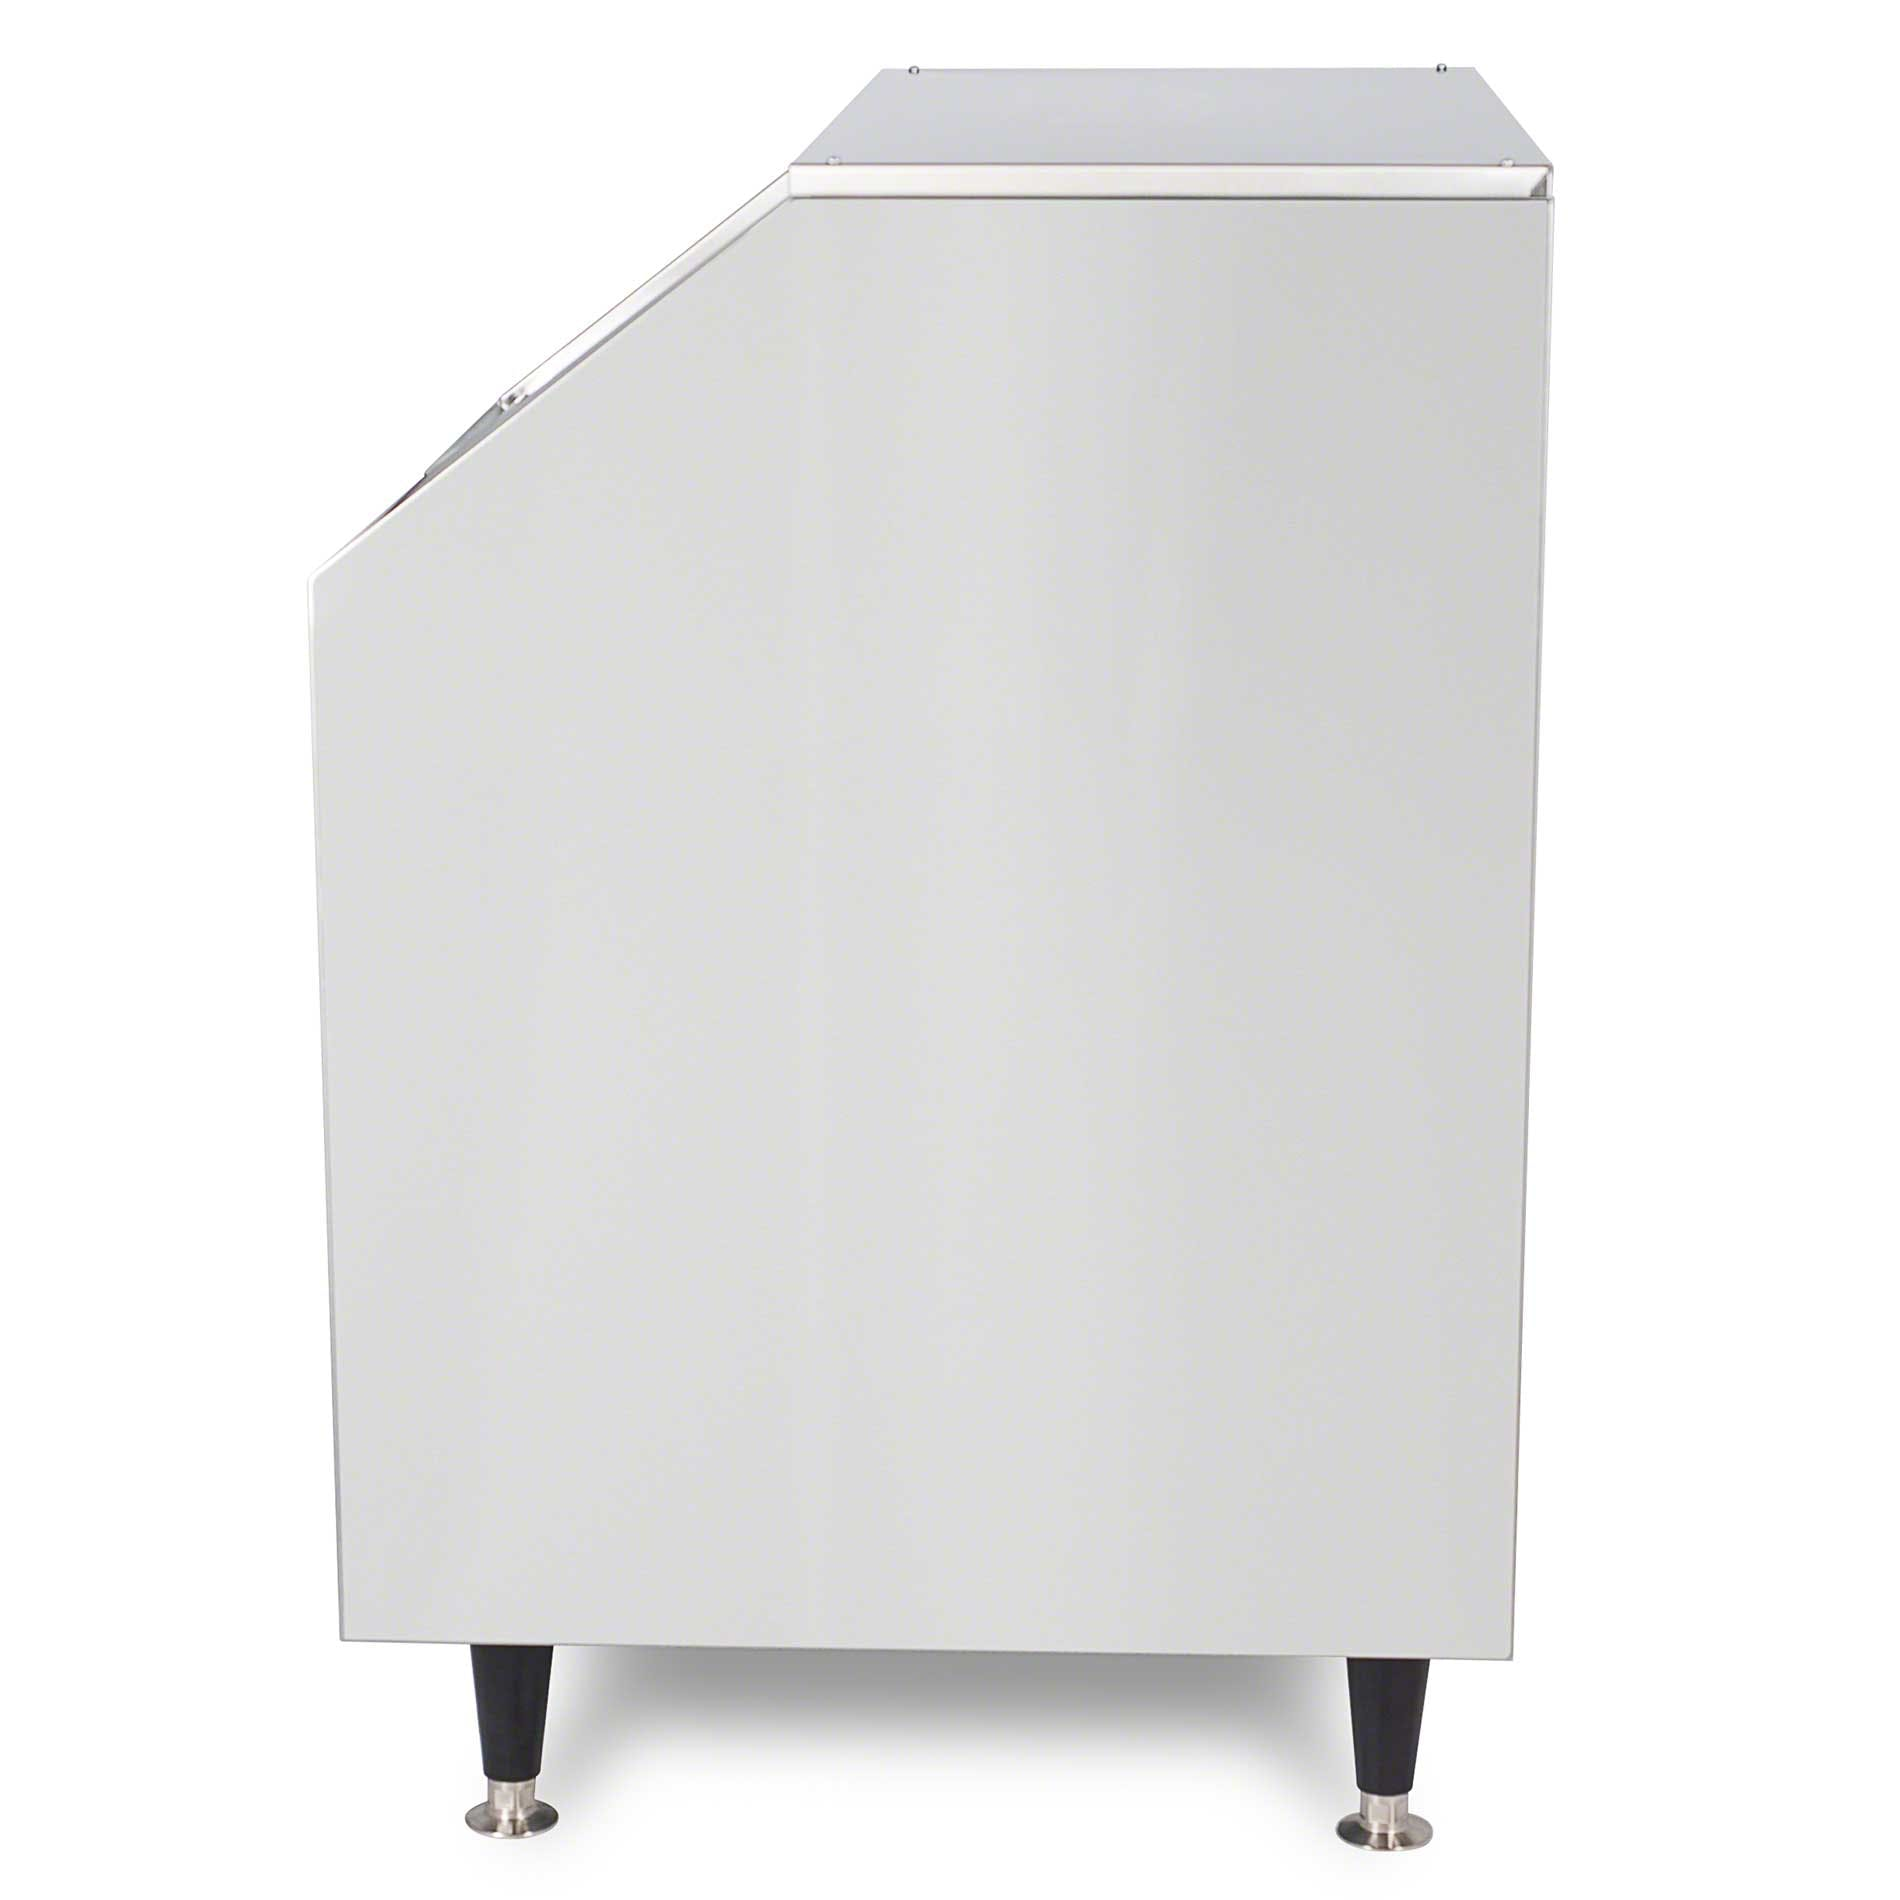 Ice-O-Matic - EF450A32S 472 lb Self-Contained Flake Ice Machine Ice machine sold by Food Service Warehouse